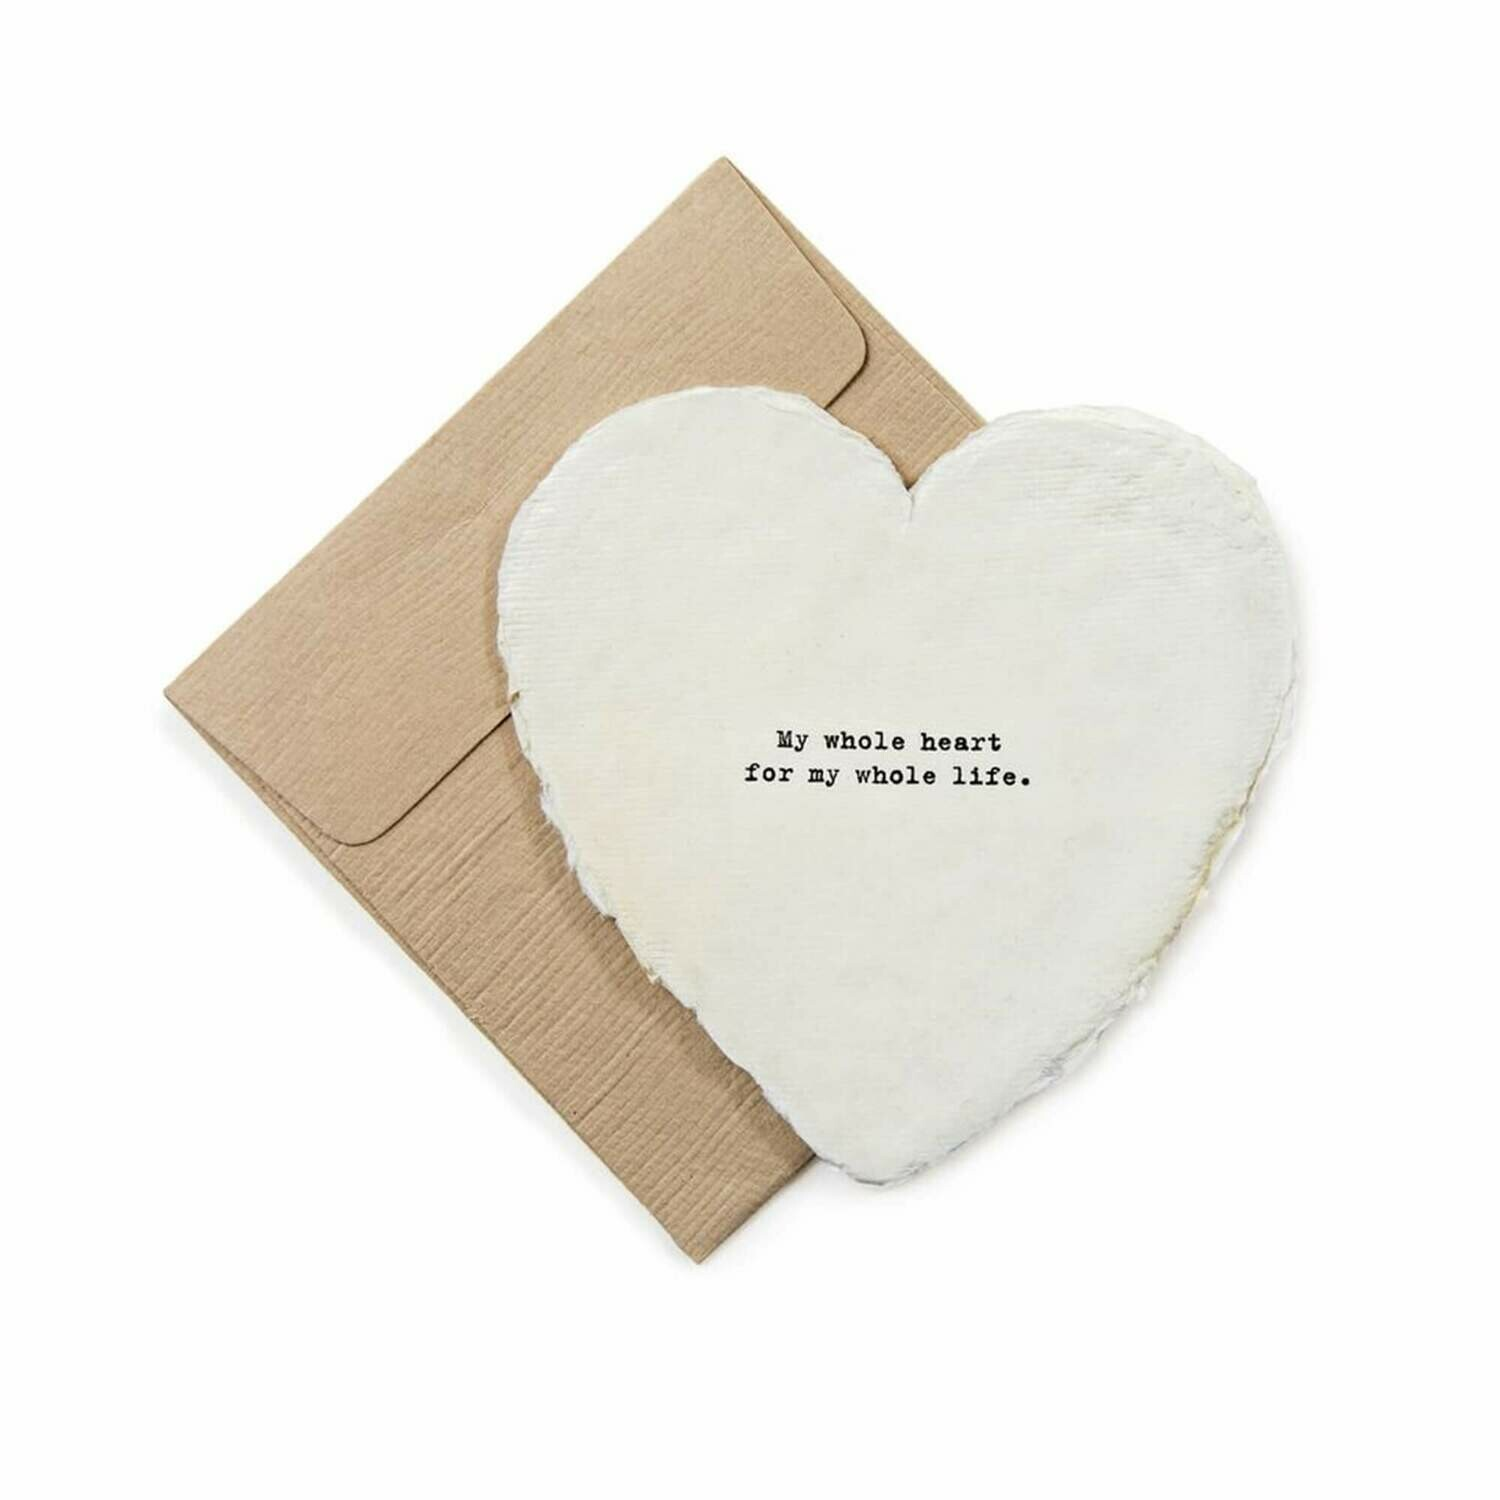 Mini Heart Shaped Card & Envelope-My whole heart